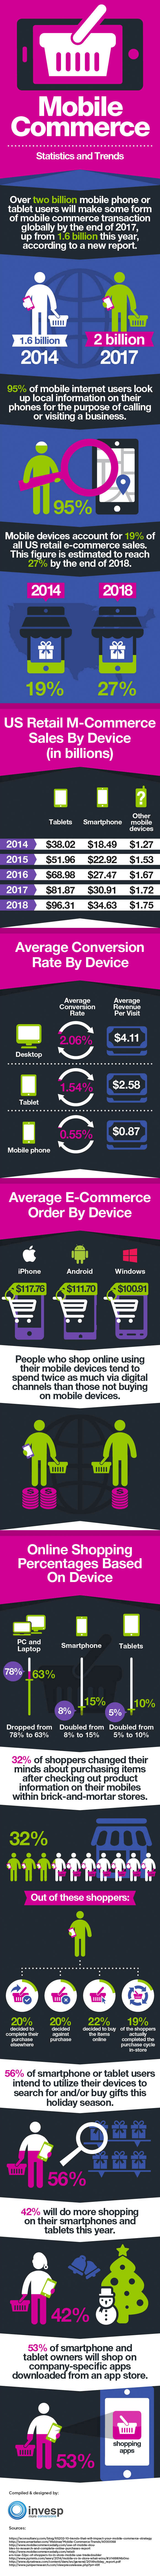 mobile-commerce-infographic2